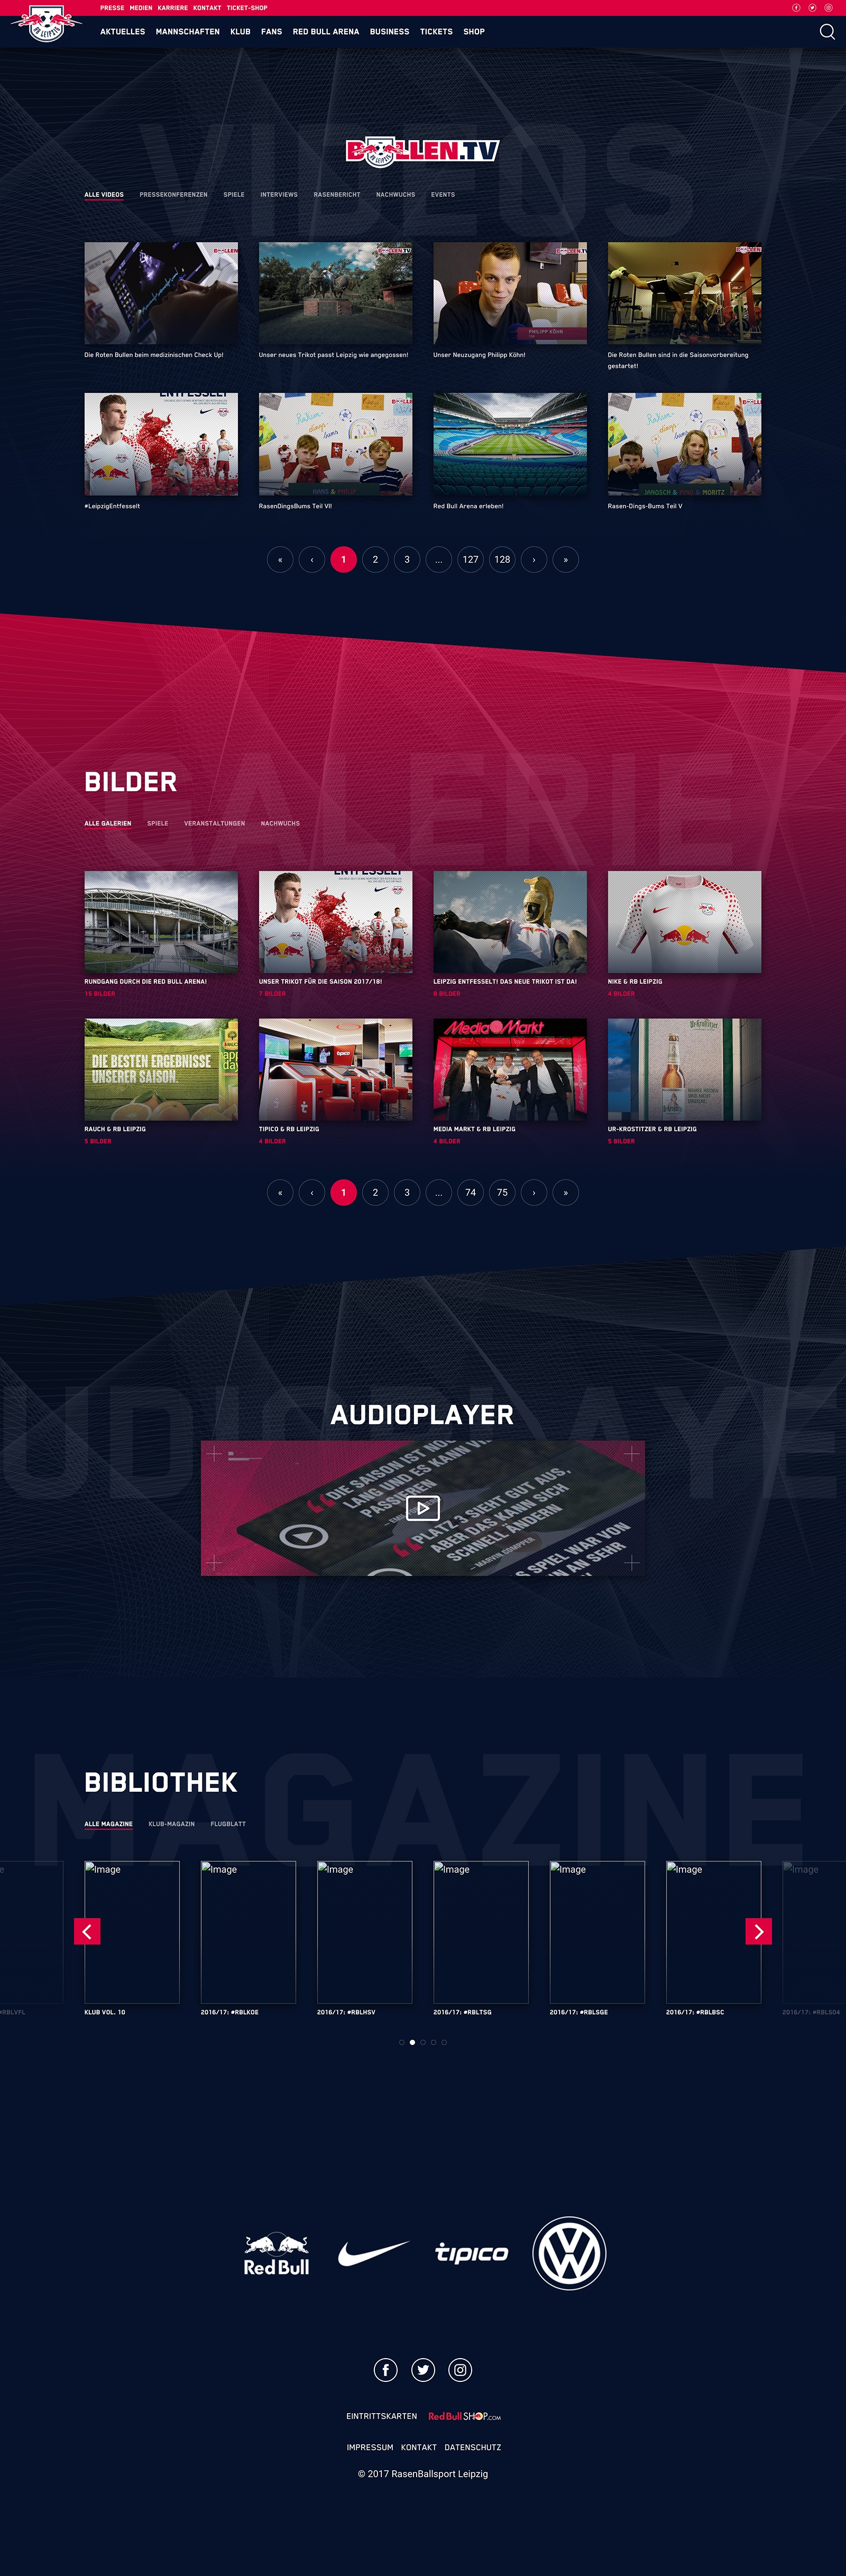 Rb Leipzig Website Relaunch 2017 Image 05